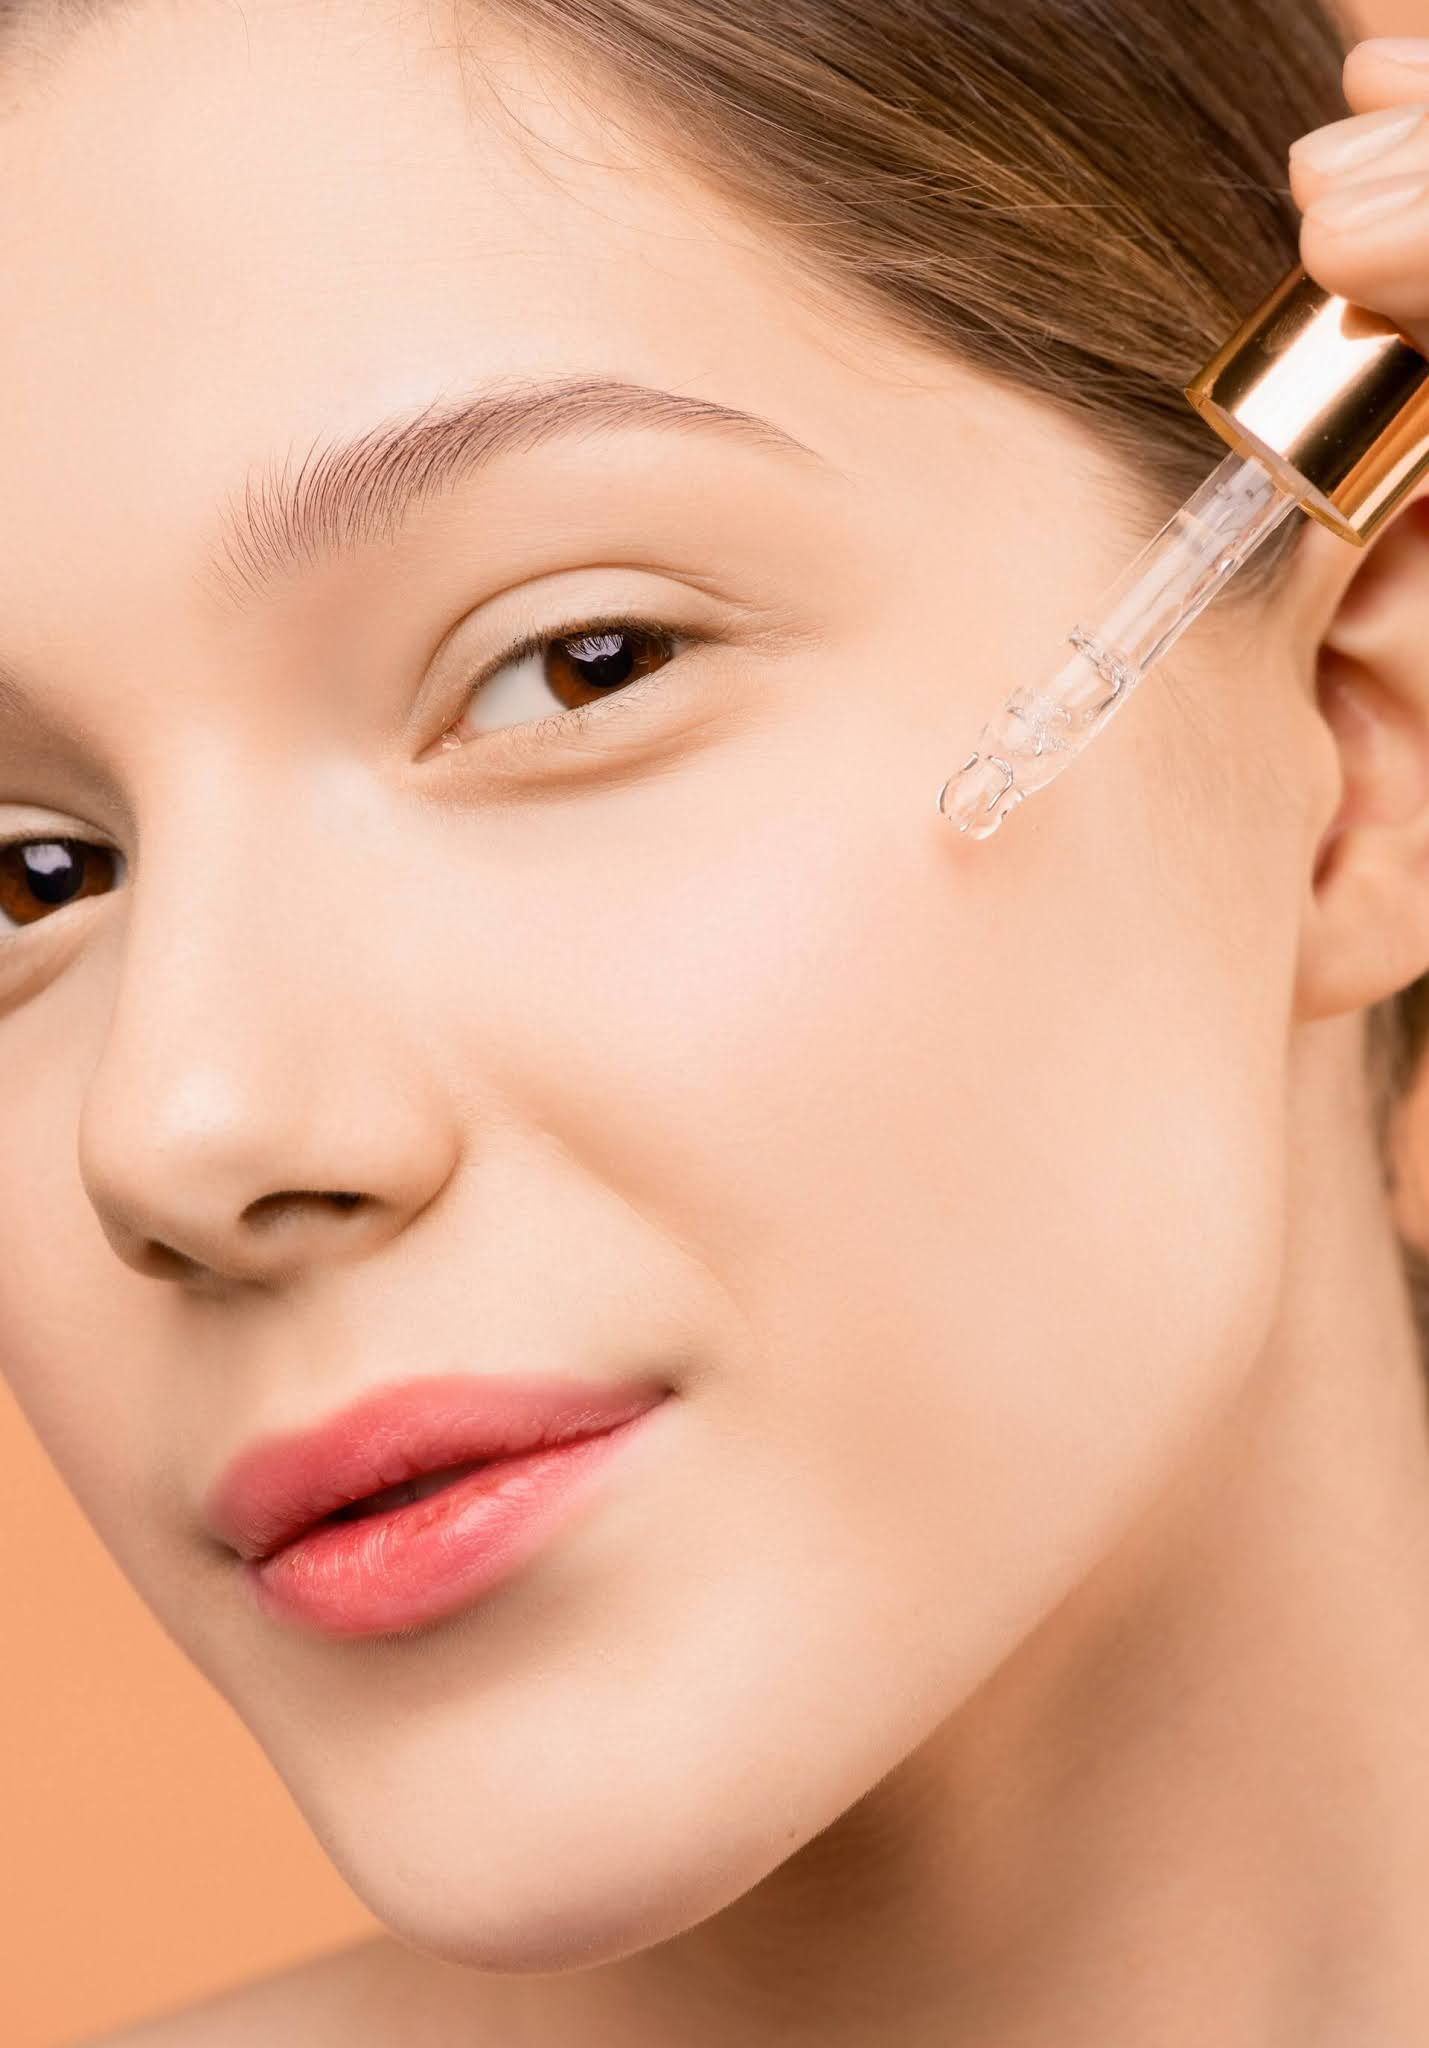 Top 5 best face serum for glowing skin